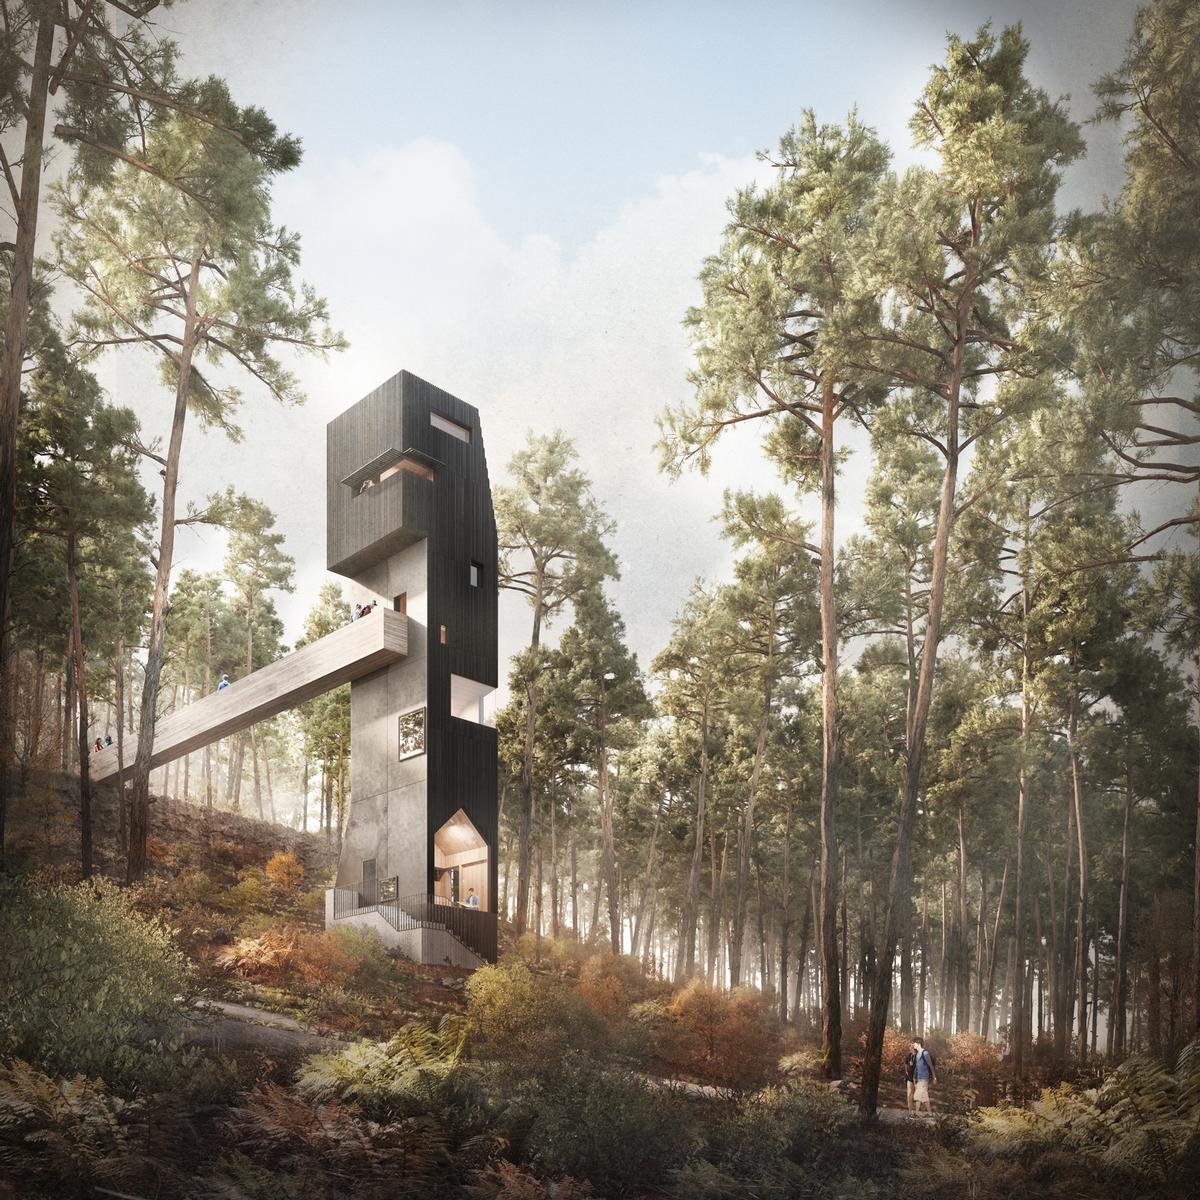 The structure features a bird hide at its peak, offering views of the surrounding tree canopies and allowing visitors to observe the local wildlife